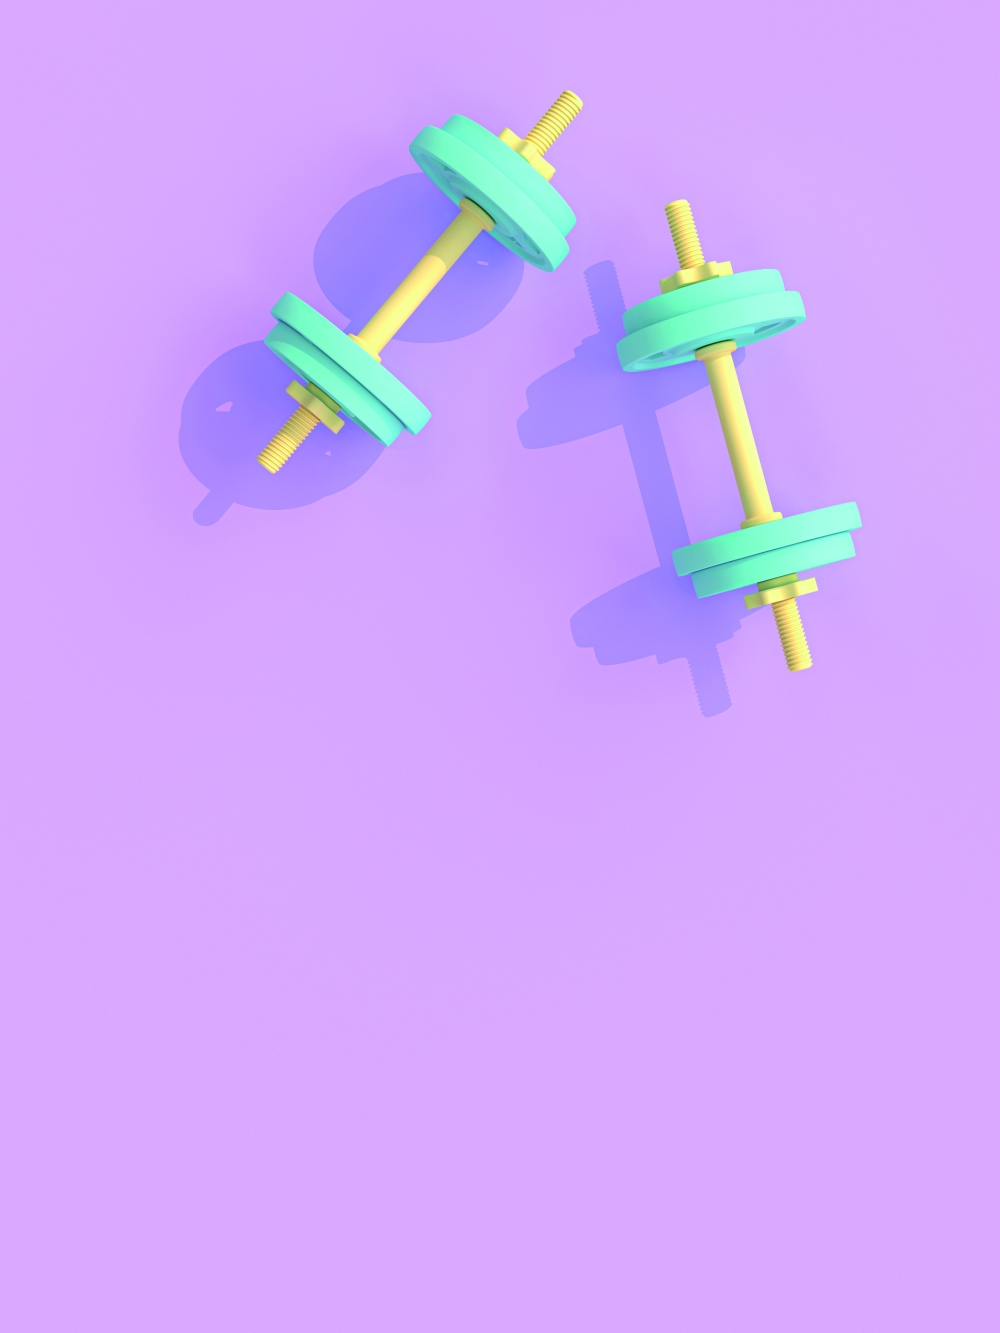 yellow and blue dumbbells on violet background.